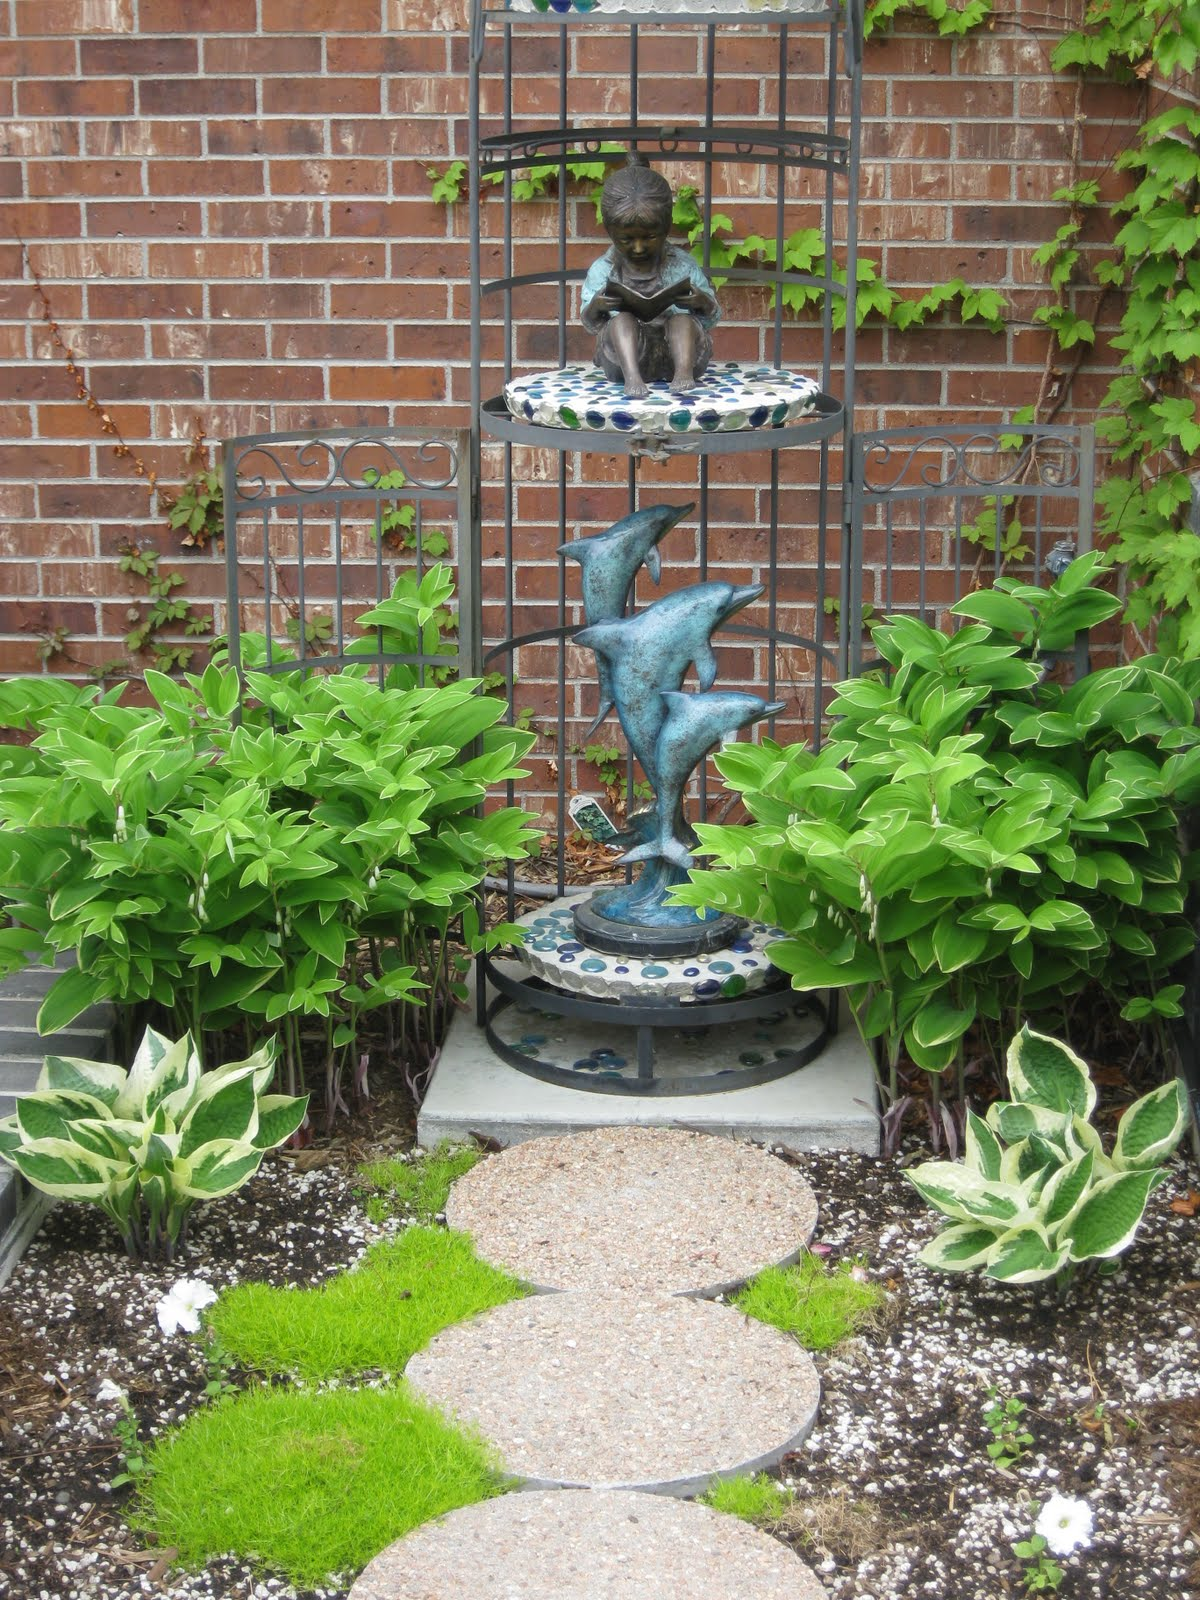 Herb garden design ideas photograph garden design idea for Garden ideas and designs photos